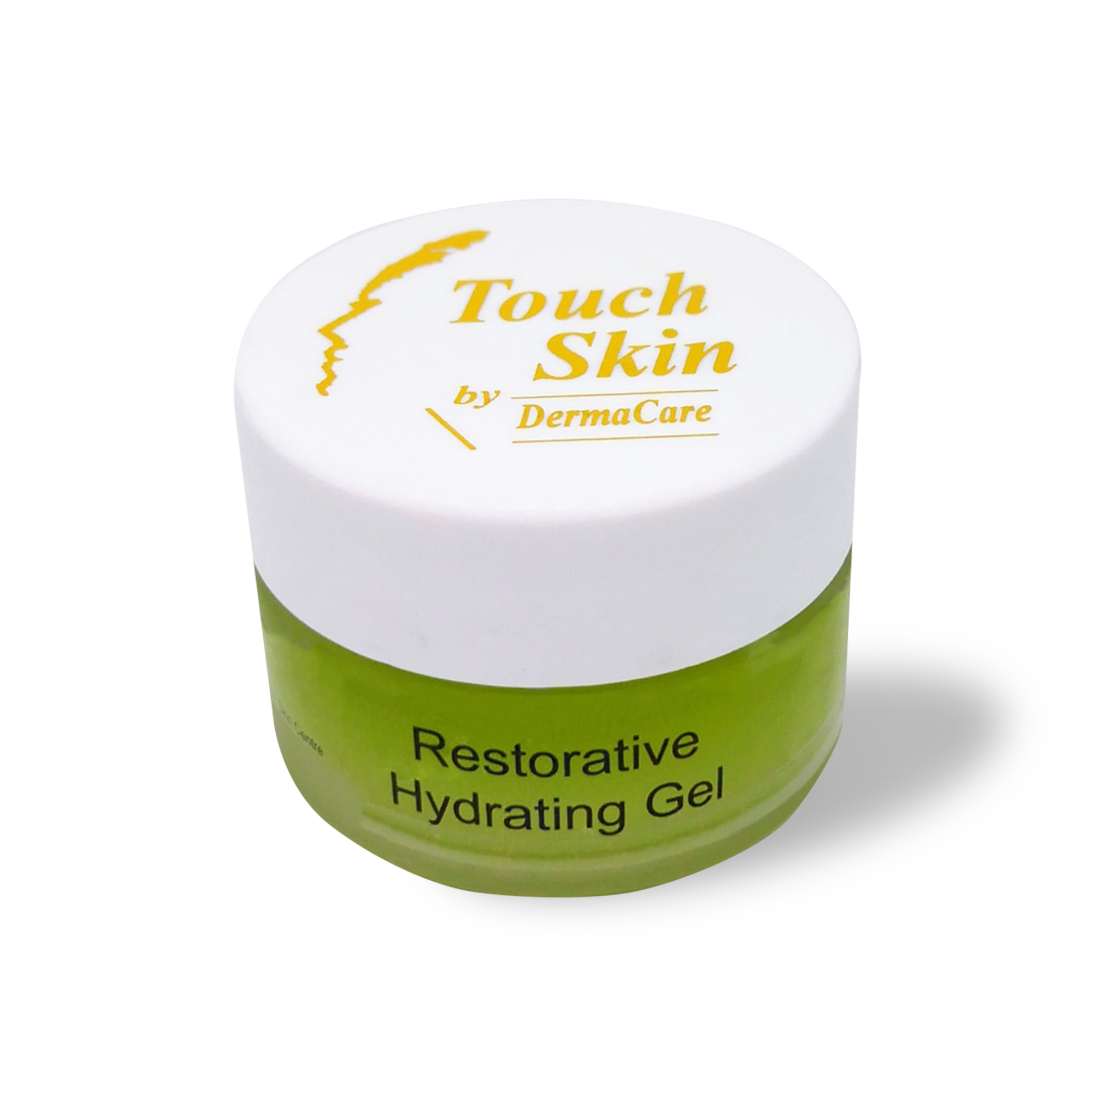 Restorative Hydrating Gel - Dermacare Therapeutic Skincare